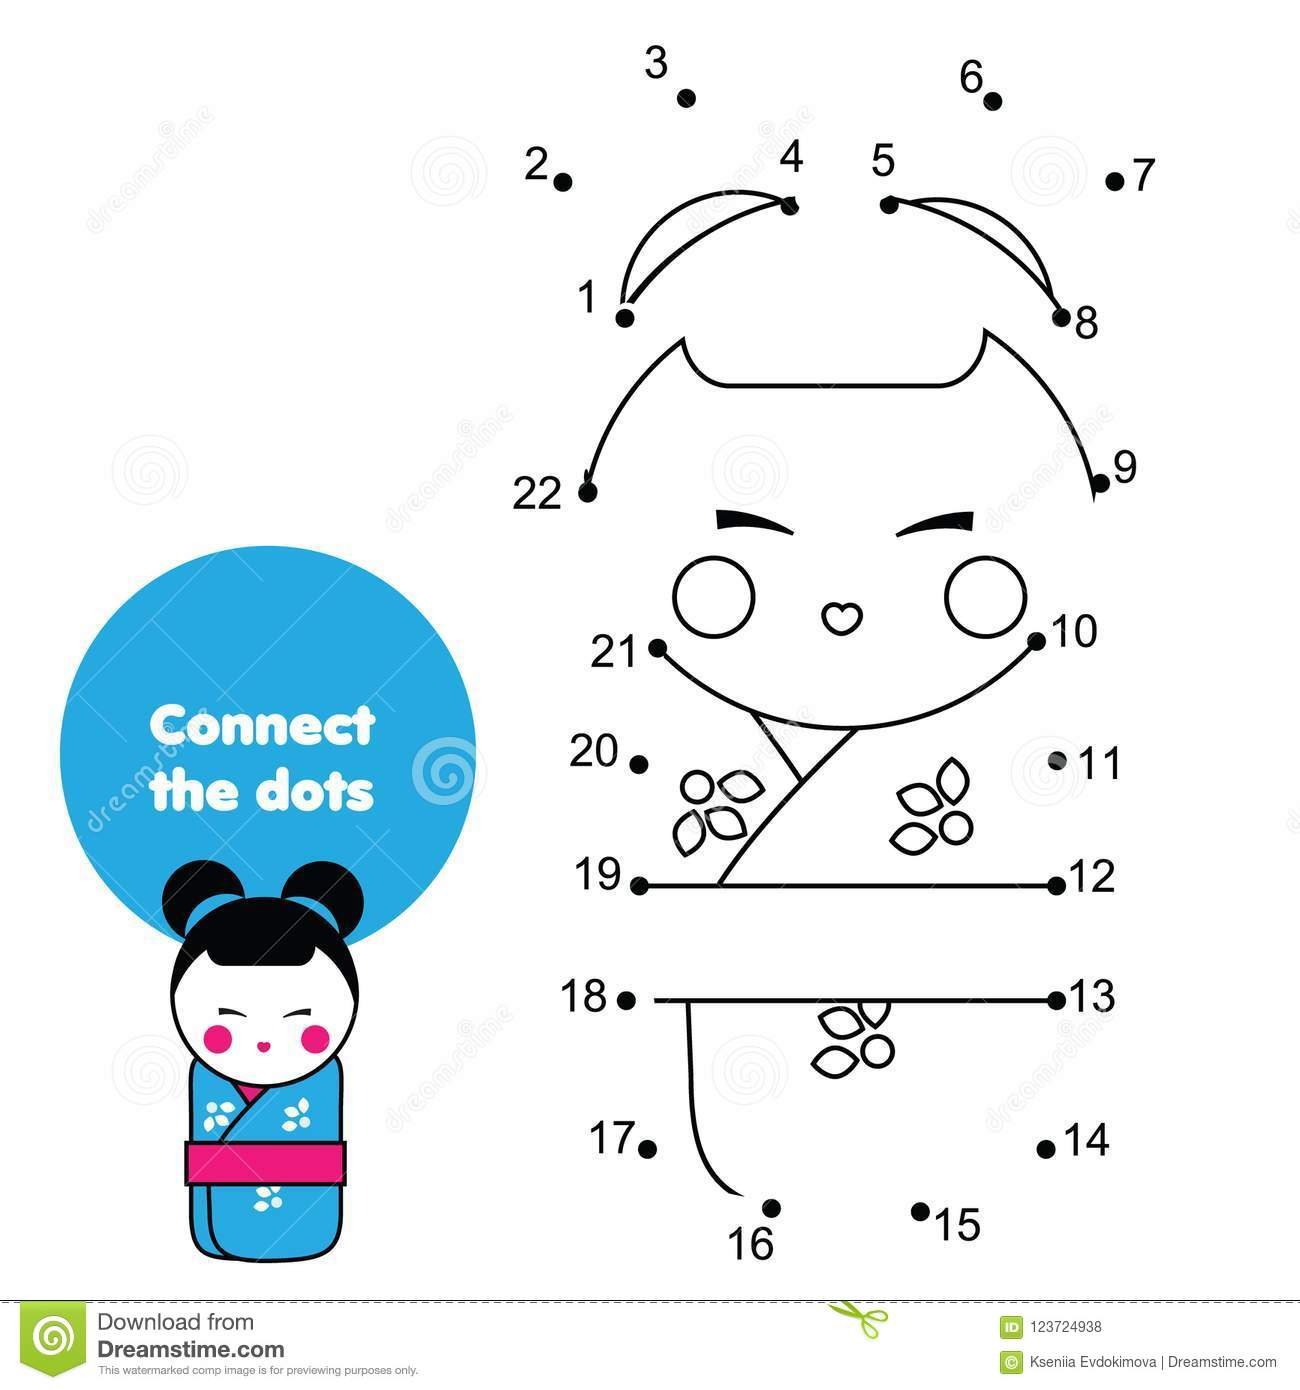 Connect The Dots By Numbers Educational Game For Children